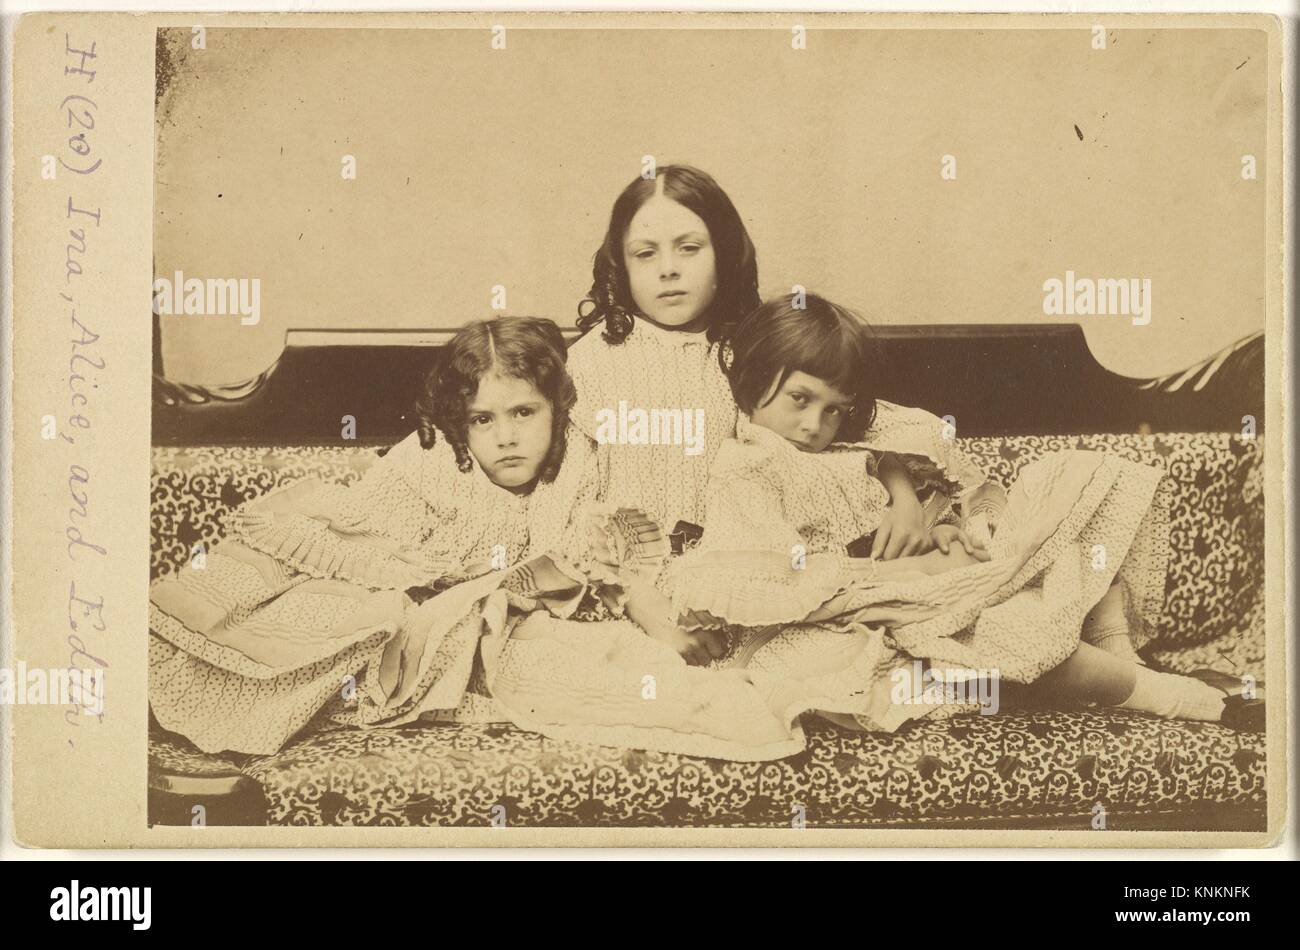 Edith, Ina and Alice Liddell on a Sofa. Artist: Lewis Carroll (British, Daresbury, Cheshire 1832-1898 Guildford); - Stock Image